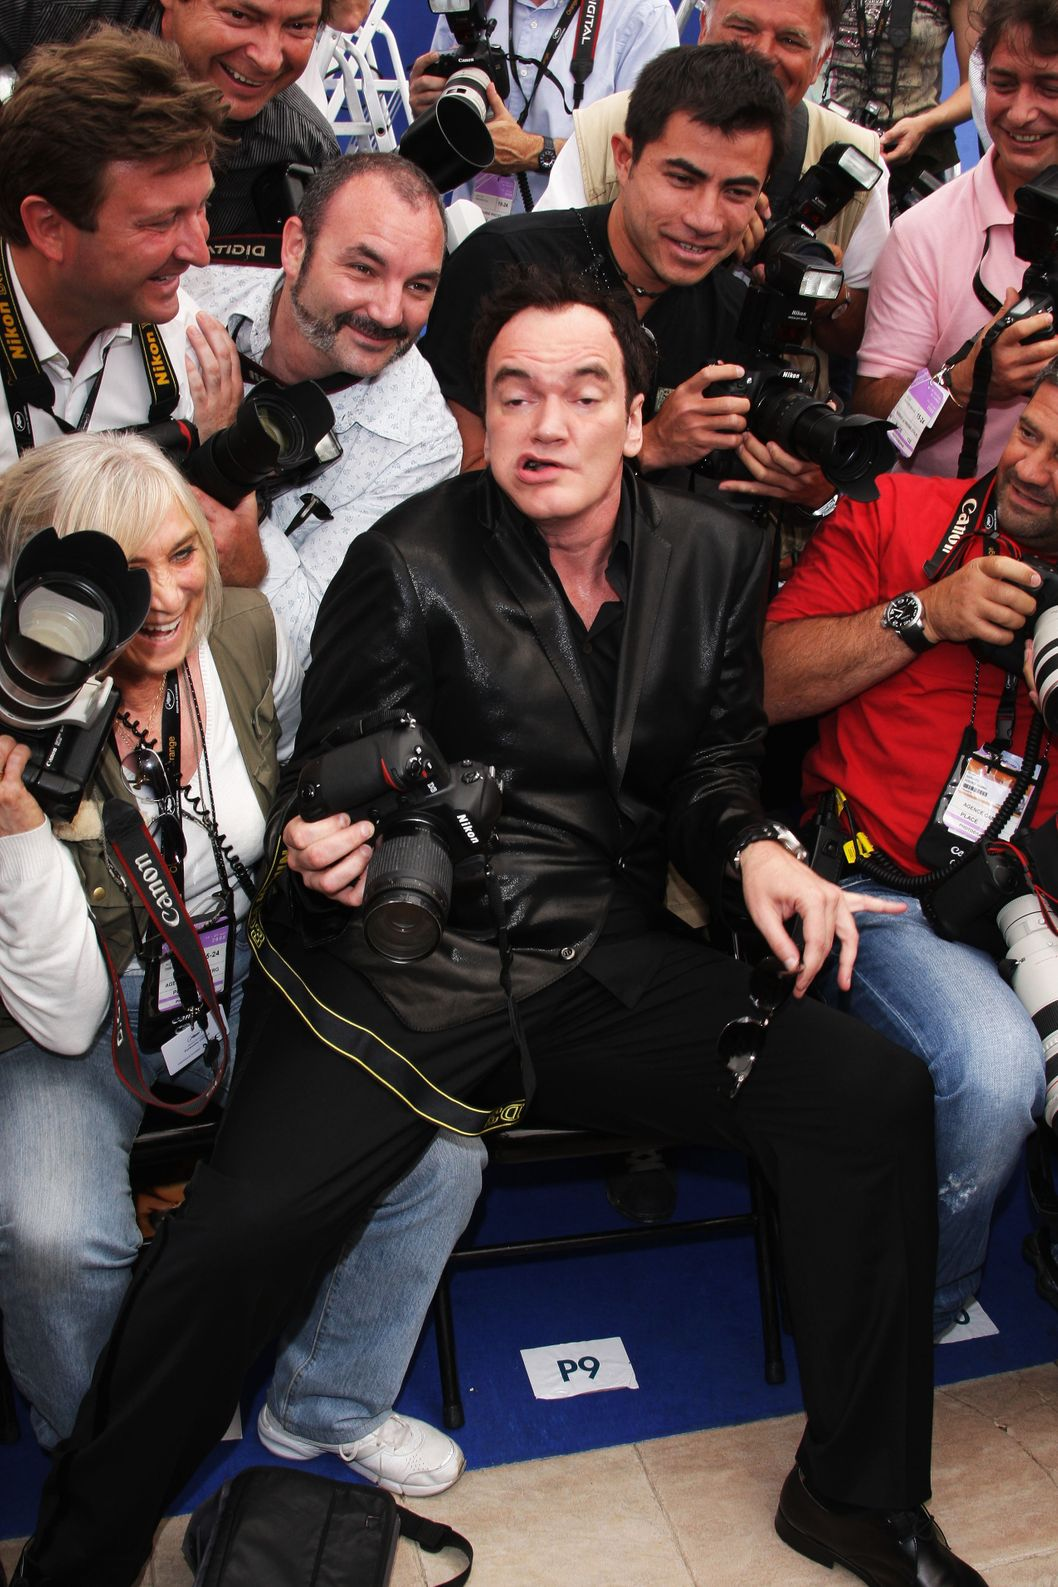 CANNES, FRANCE - MAY 22:  Quentin Tarantino sits with the photographers as he attends the Lecon De Cinema Photocall at the Palais des Festivals during the 61st International Cannes Film Festival on May 22, 2008 in Cannes, France.  (Photo by Francois Durand/Getty Images)